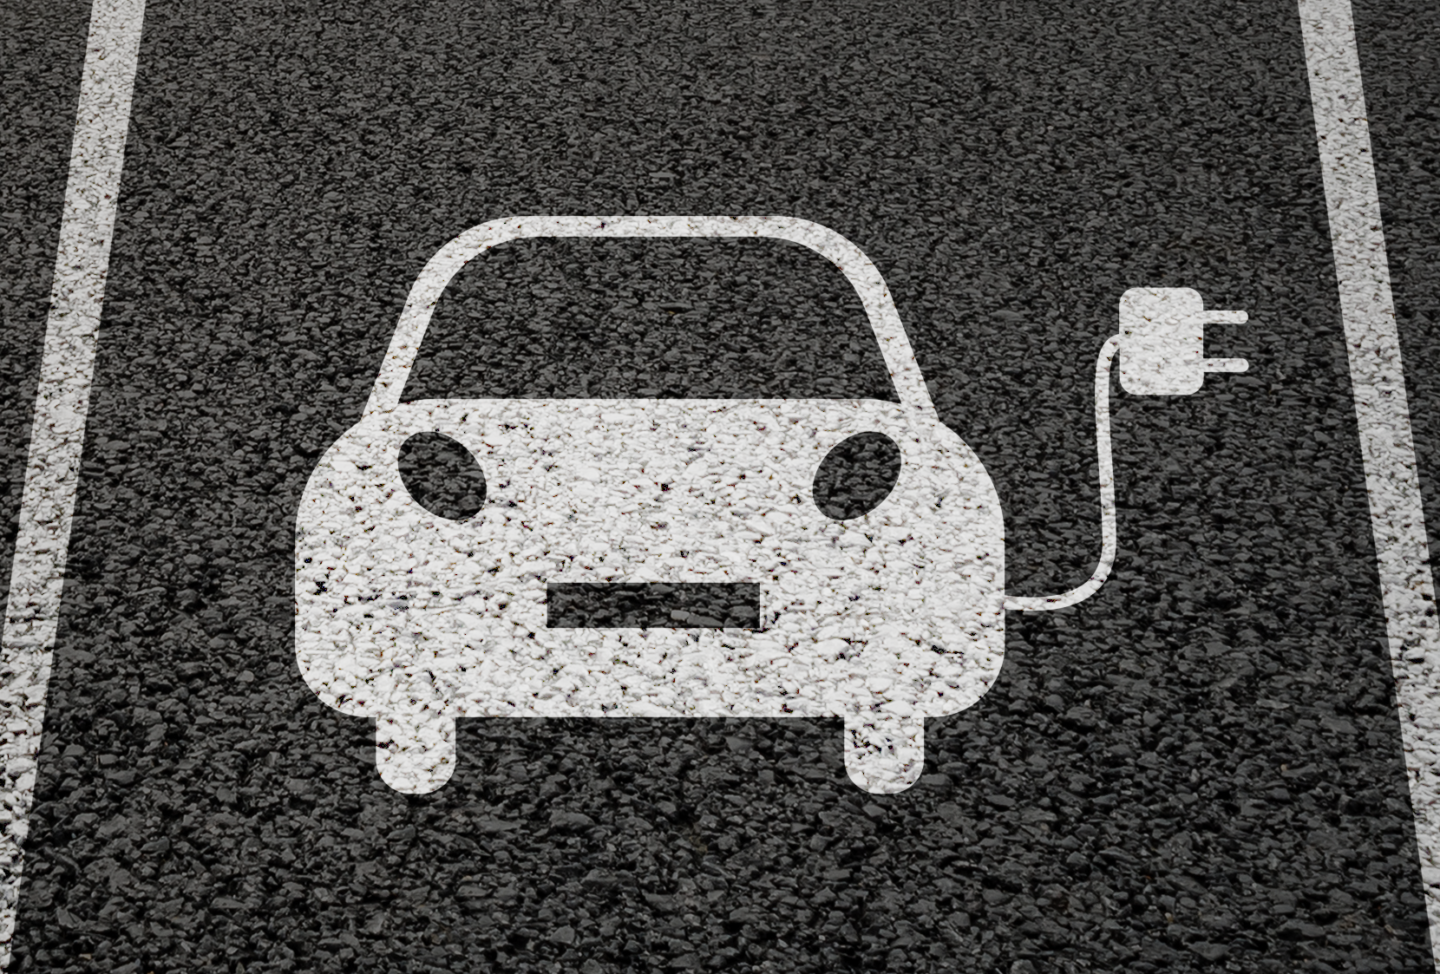 Developing electric mobility